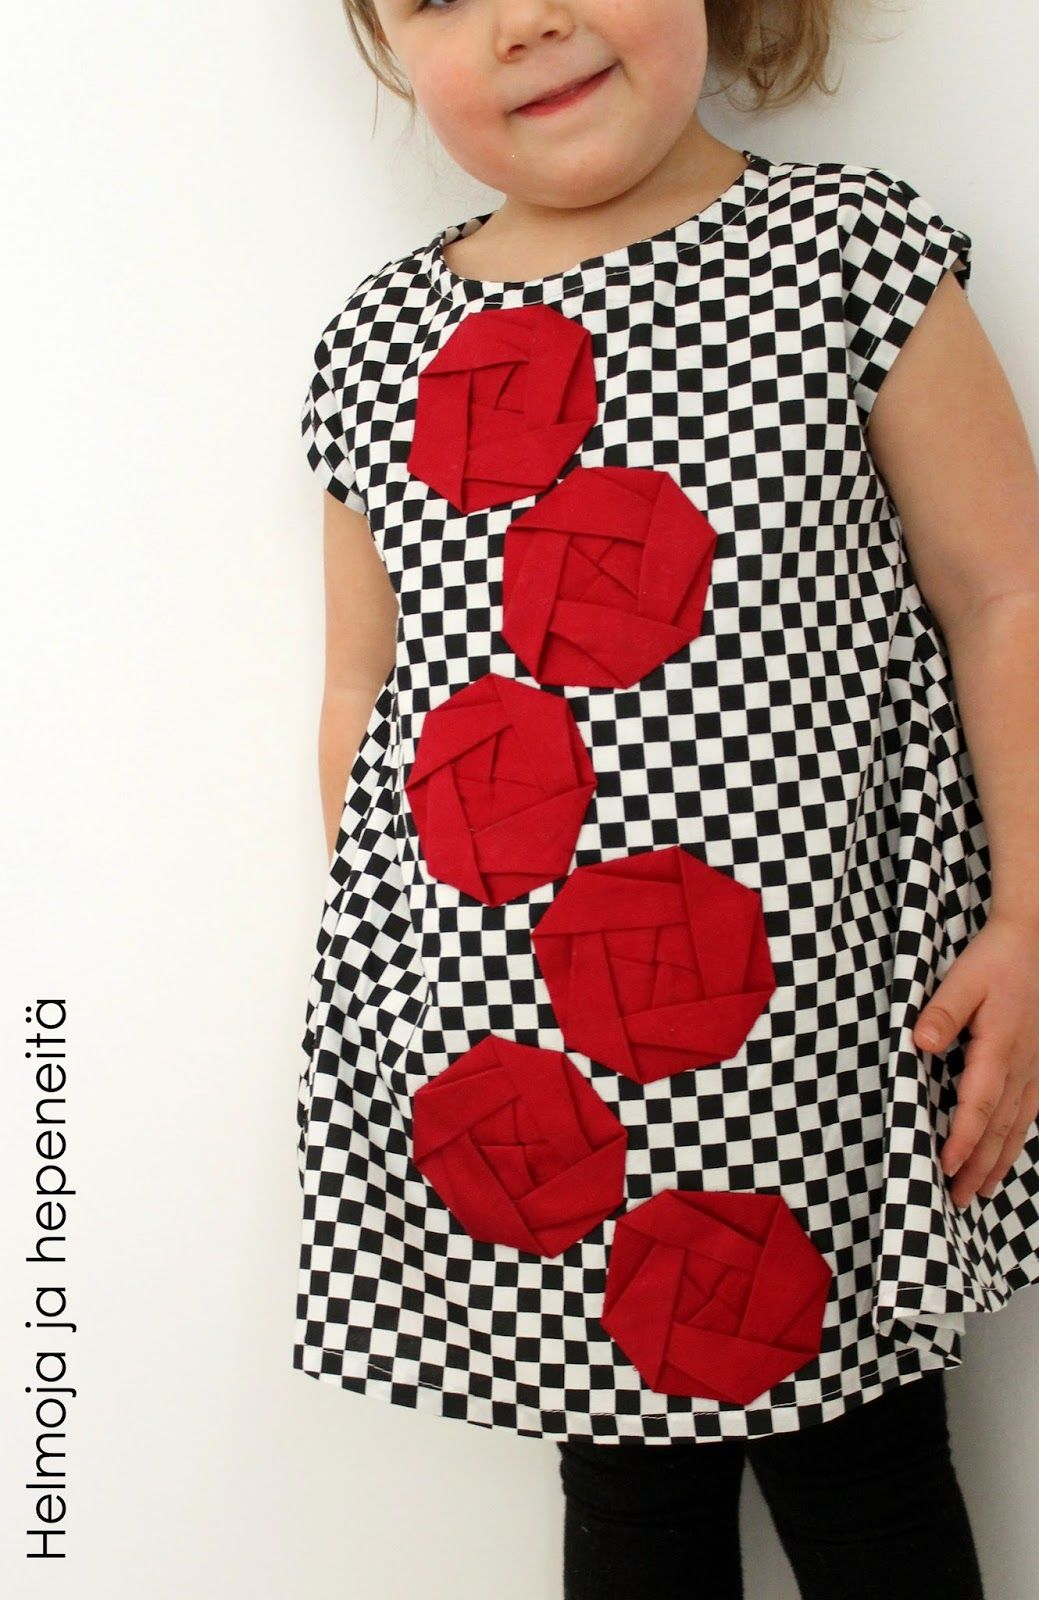 Rally Roses and origami-successes - Folded origami roses on a dress